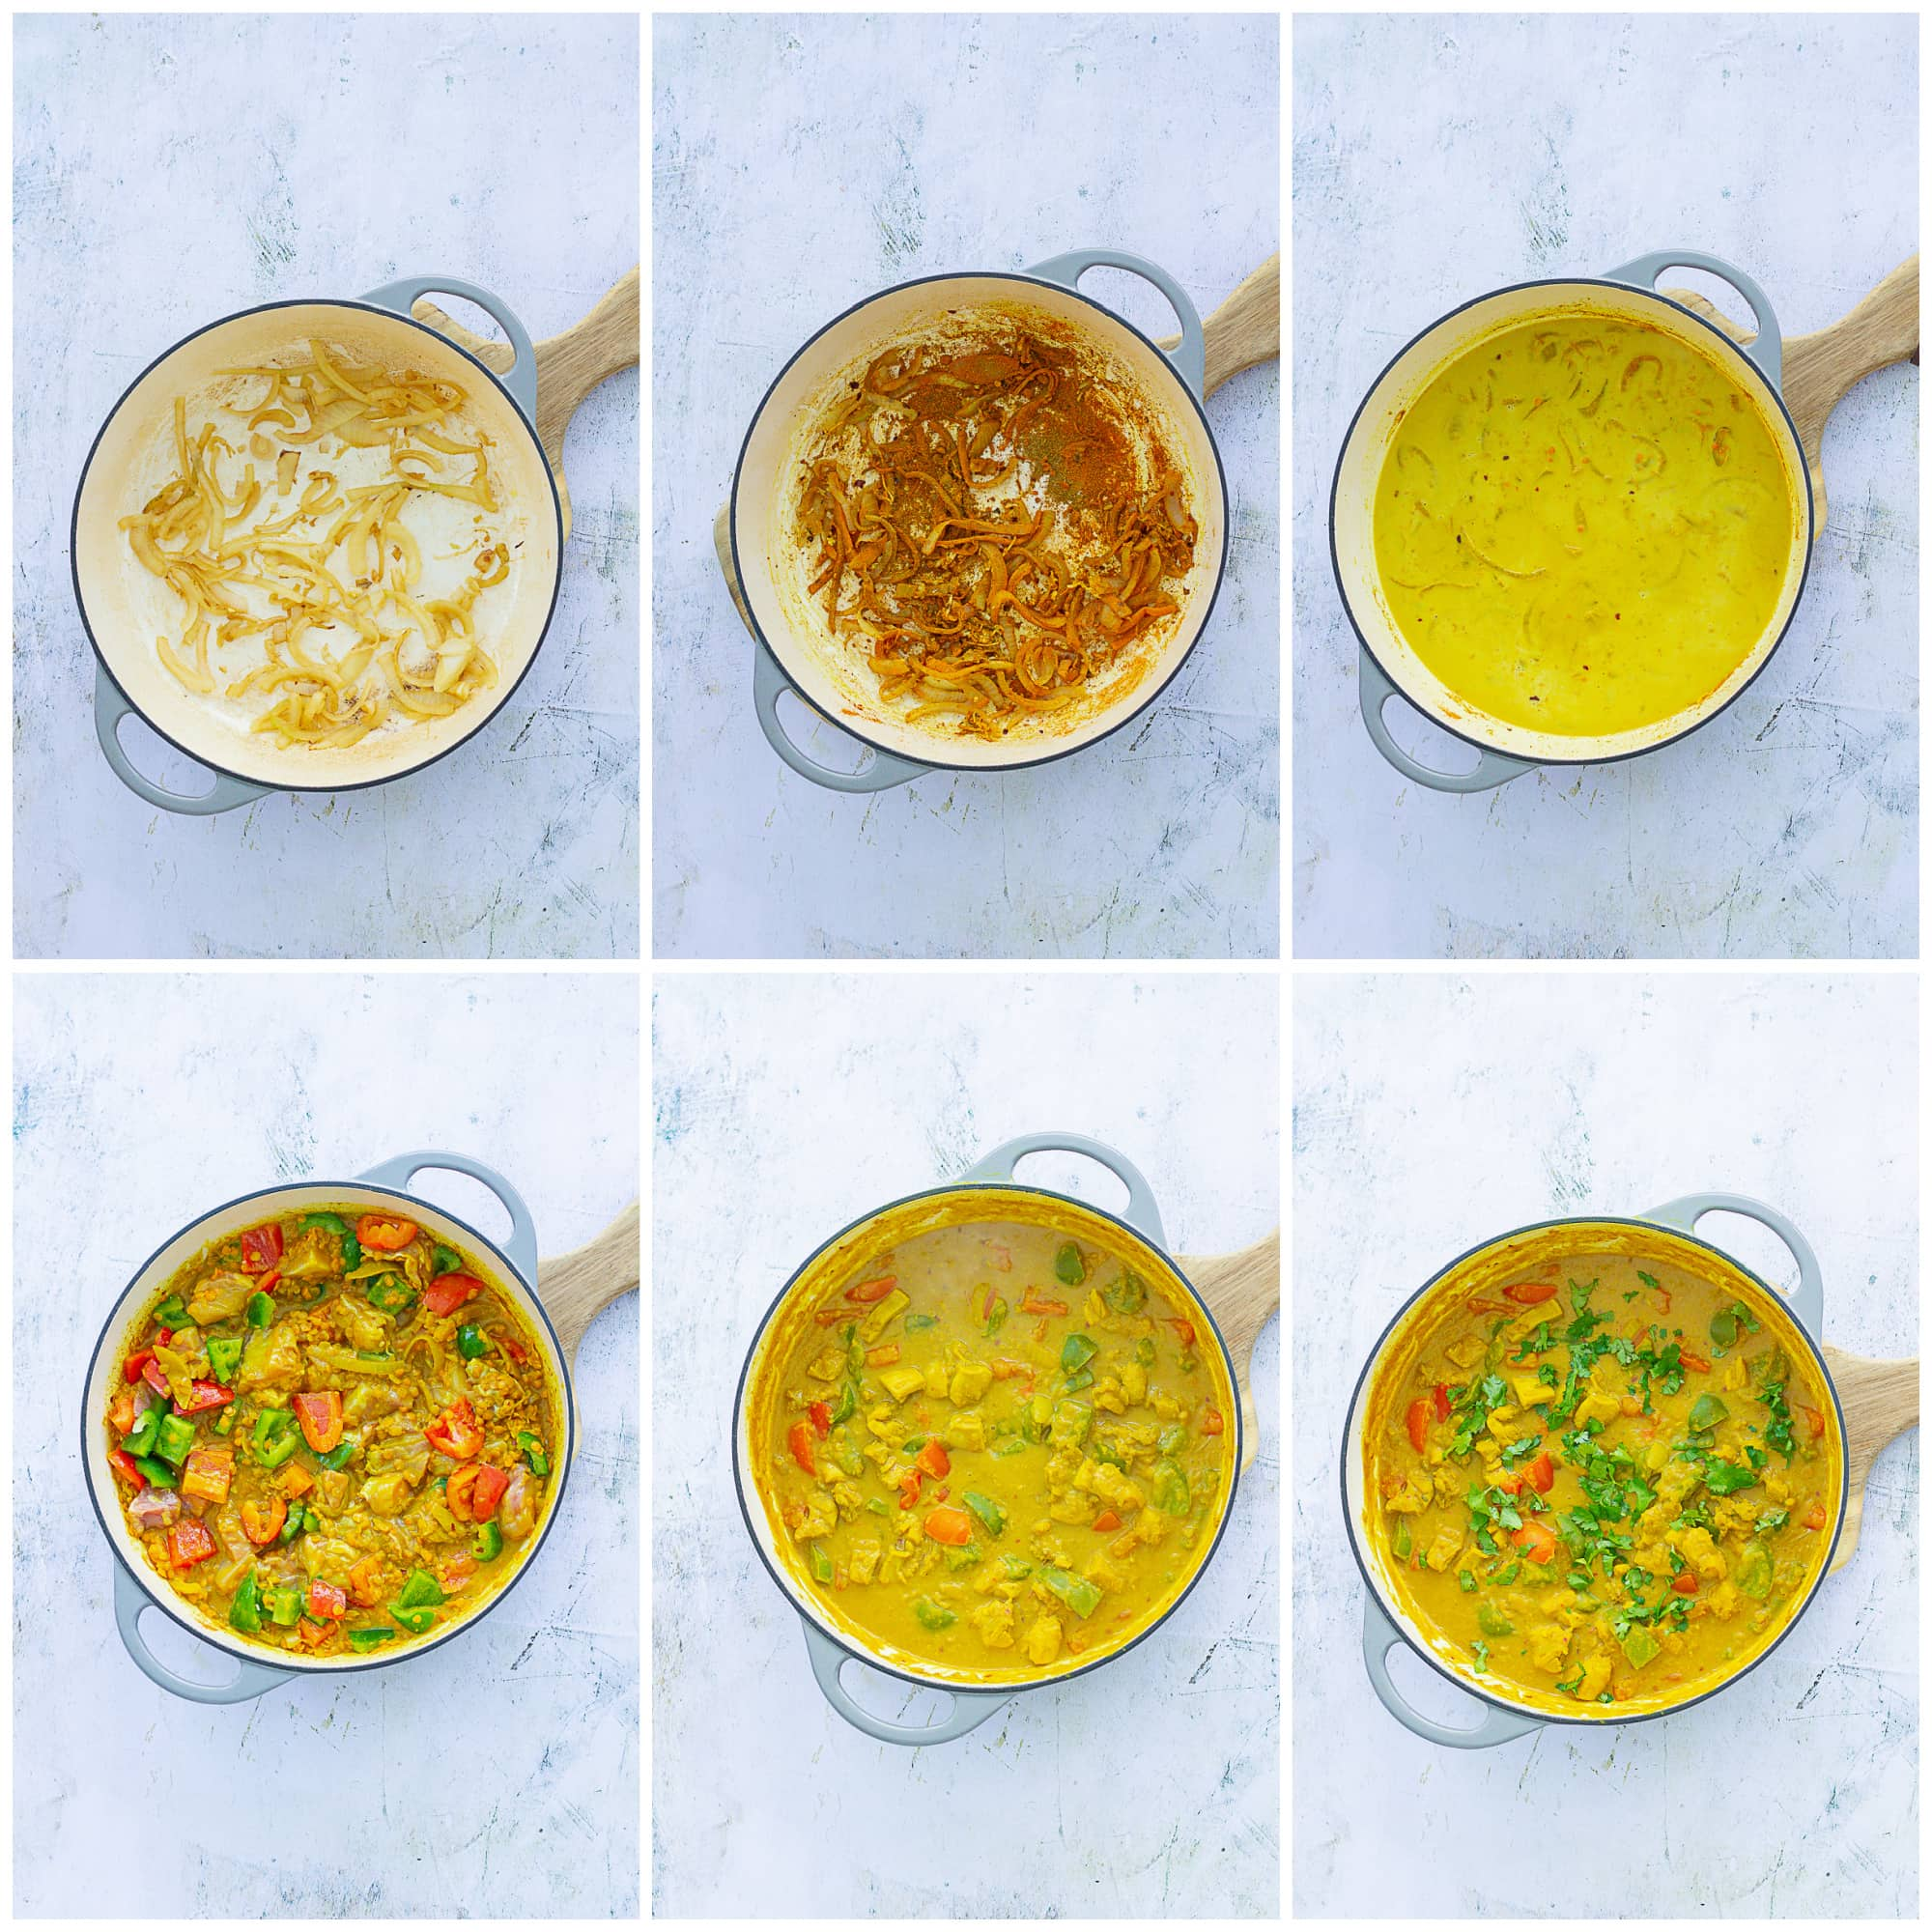 Collage showing 6 step-by-step preparation images of Chicken, Red Lentil and Coconut Curry